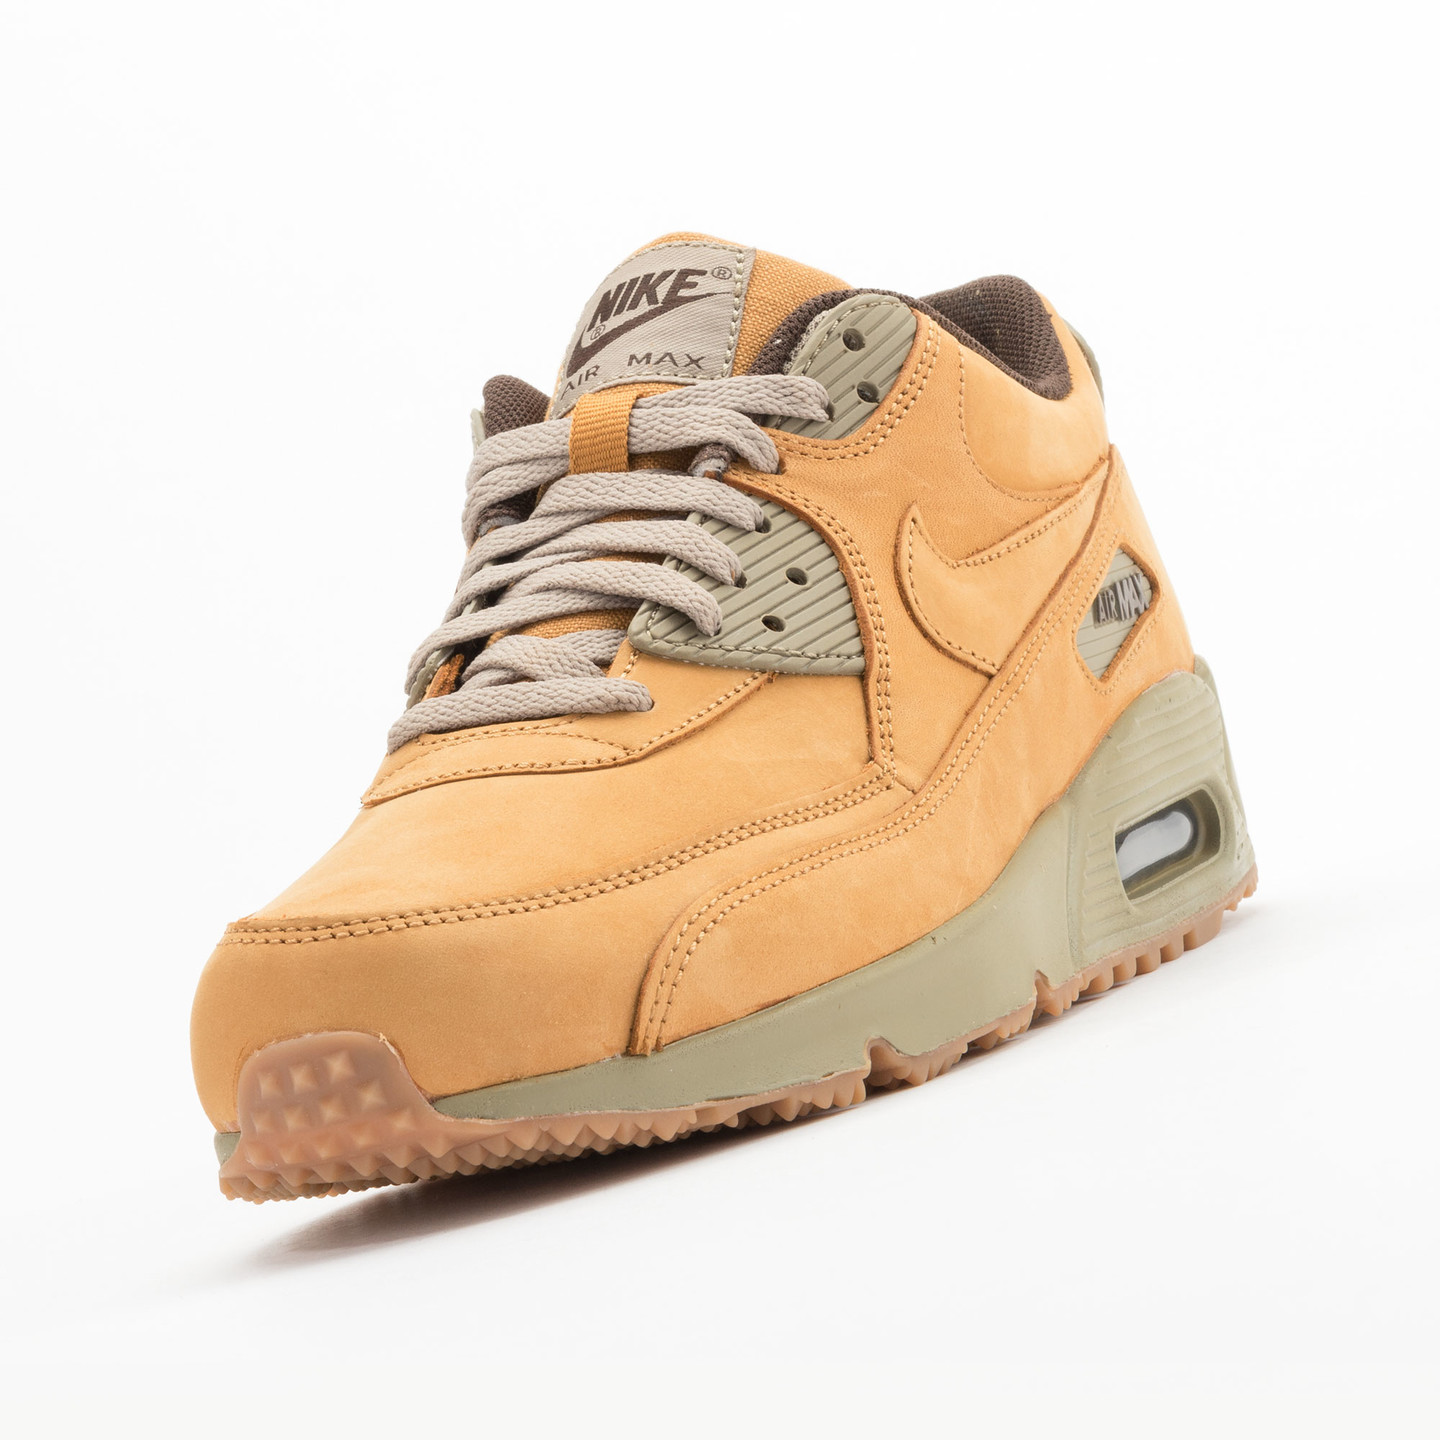 Nike Air Max 90 Winter Premium Bronze / Baroque Brown 683282-700-42